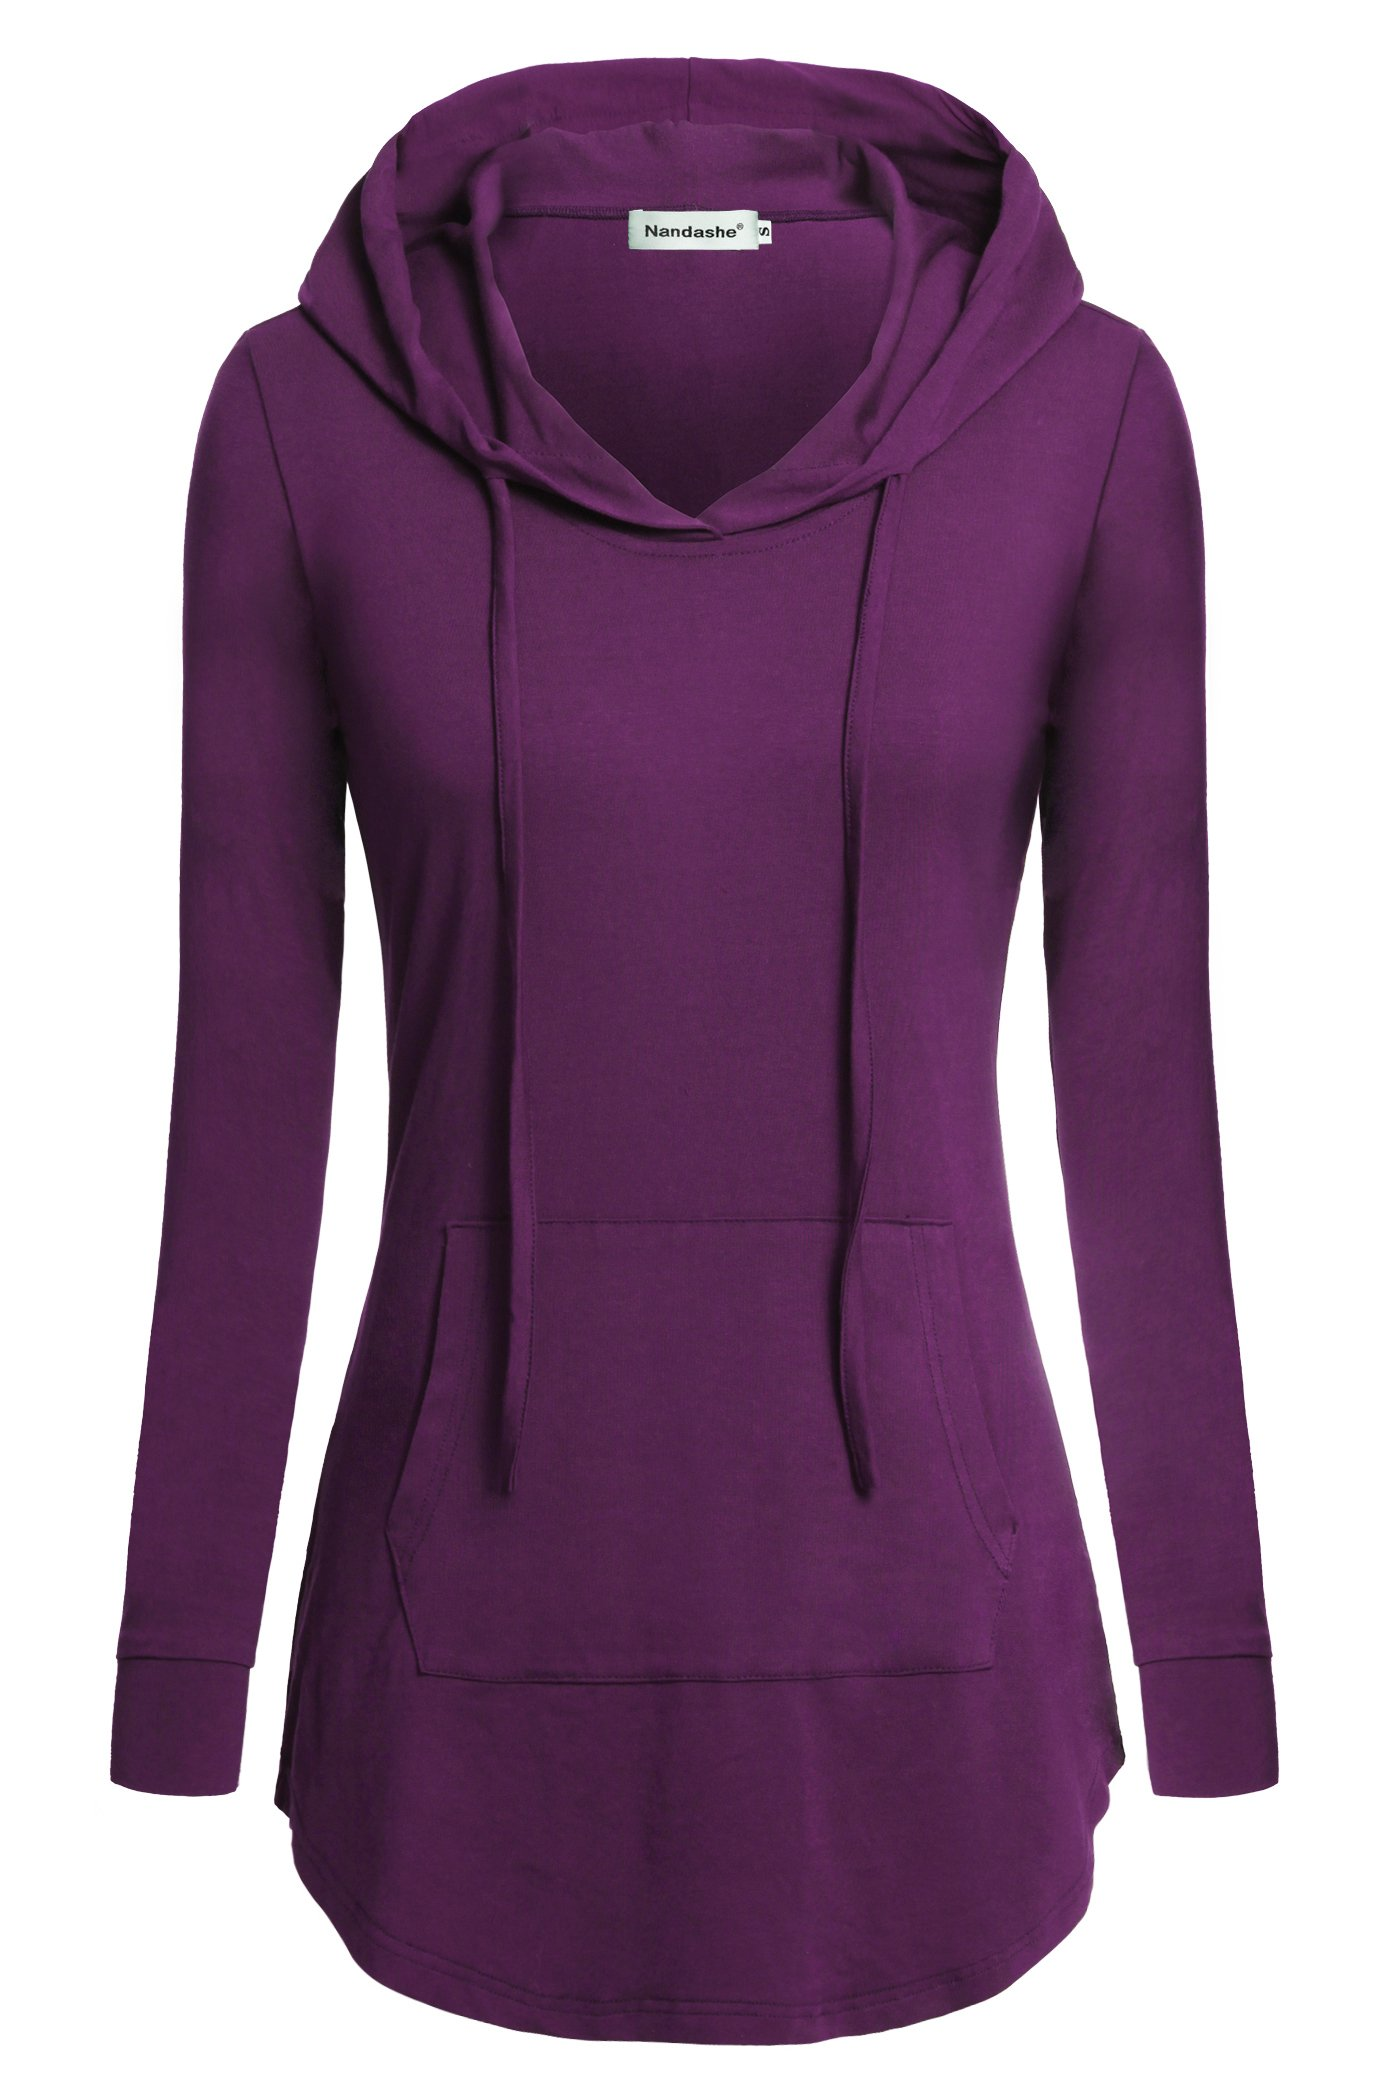 Nandashe Womens Hoodies, Single Lady Elegant Plain O Neck Drawstring Funny Cool Thin Slimming Sweater Blouses to Wear with Leggins Jeans Hot Pants Shorts Tights Capris Sports Trousers Violet Medium